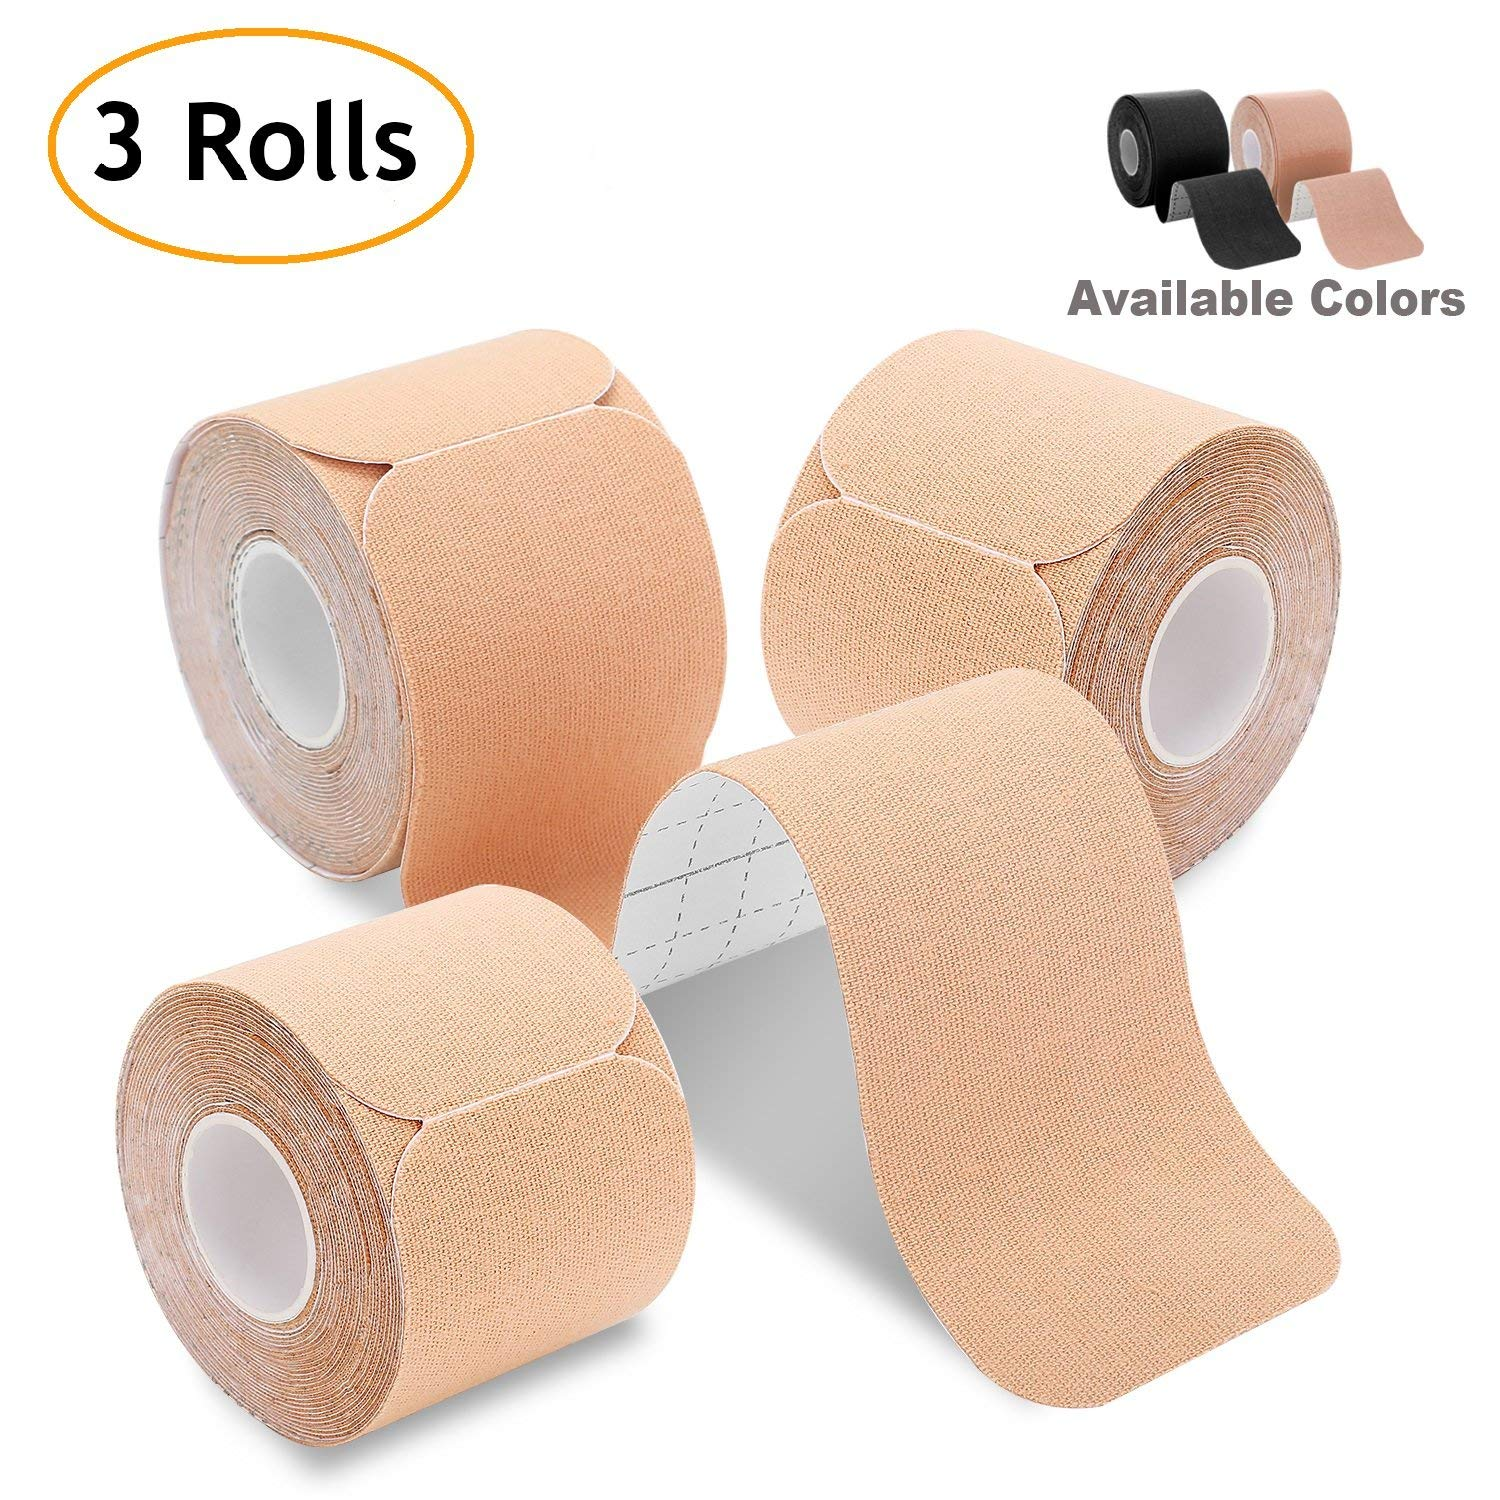 "Kinesiology Tape Precut (3 Rolls Pack), Poshei Elastic Therapeutic Sports Tape Pro for Shoulder Knee Elbow Ankle, Waterproof, Breathable, Latex Free, 2"" x 16.5 feet Per Roll (Beige)"